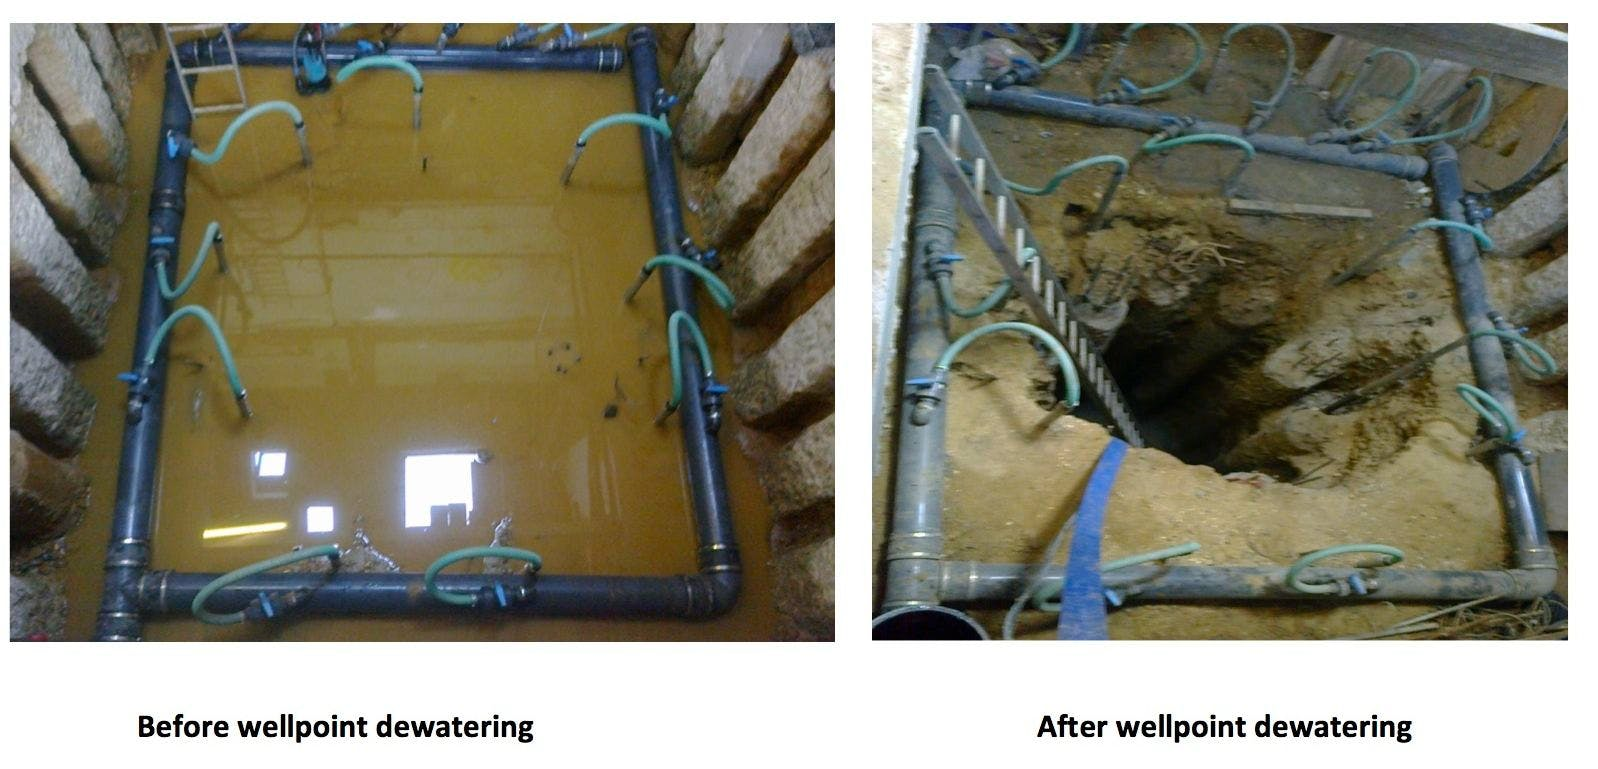 Blog Dewatering For Basement Construction Wiring Concrete Walls Before And After Wellpoint View Into A Small Excavation In Sand